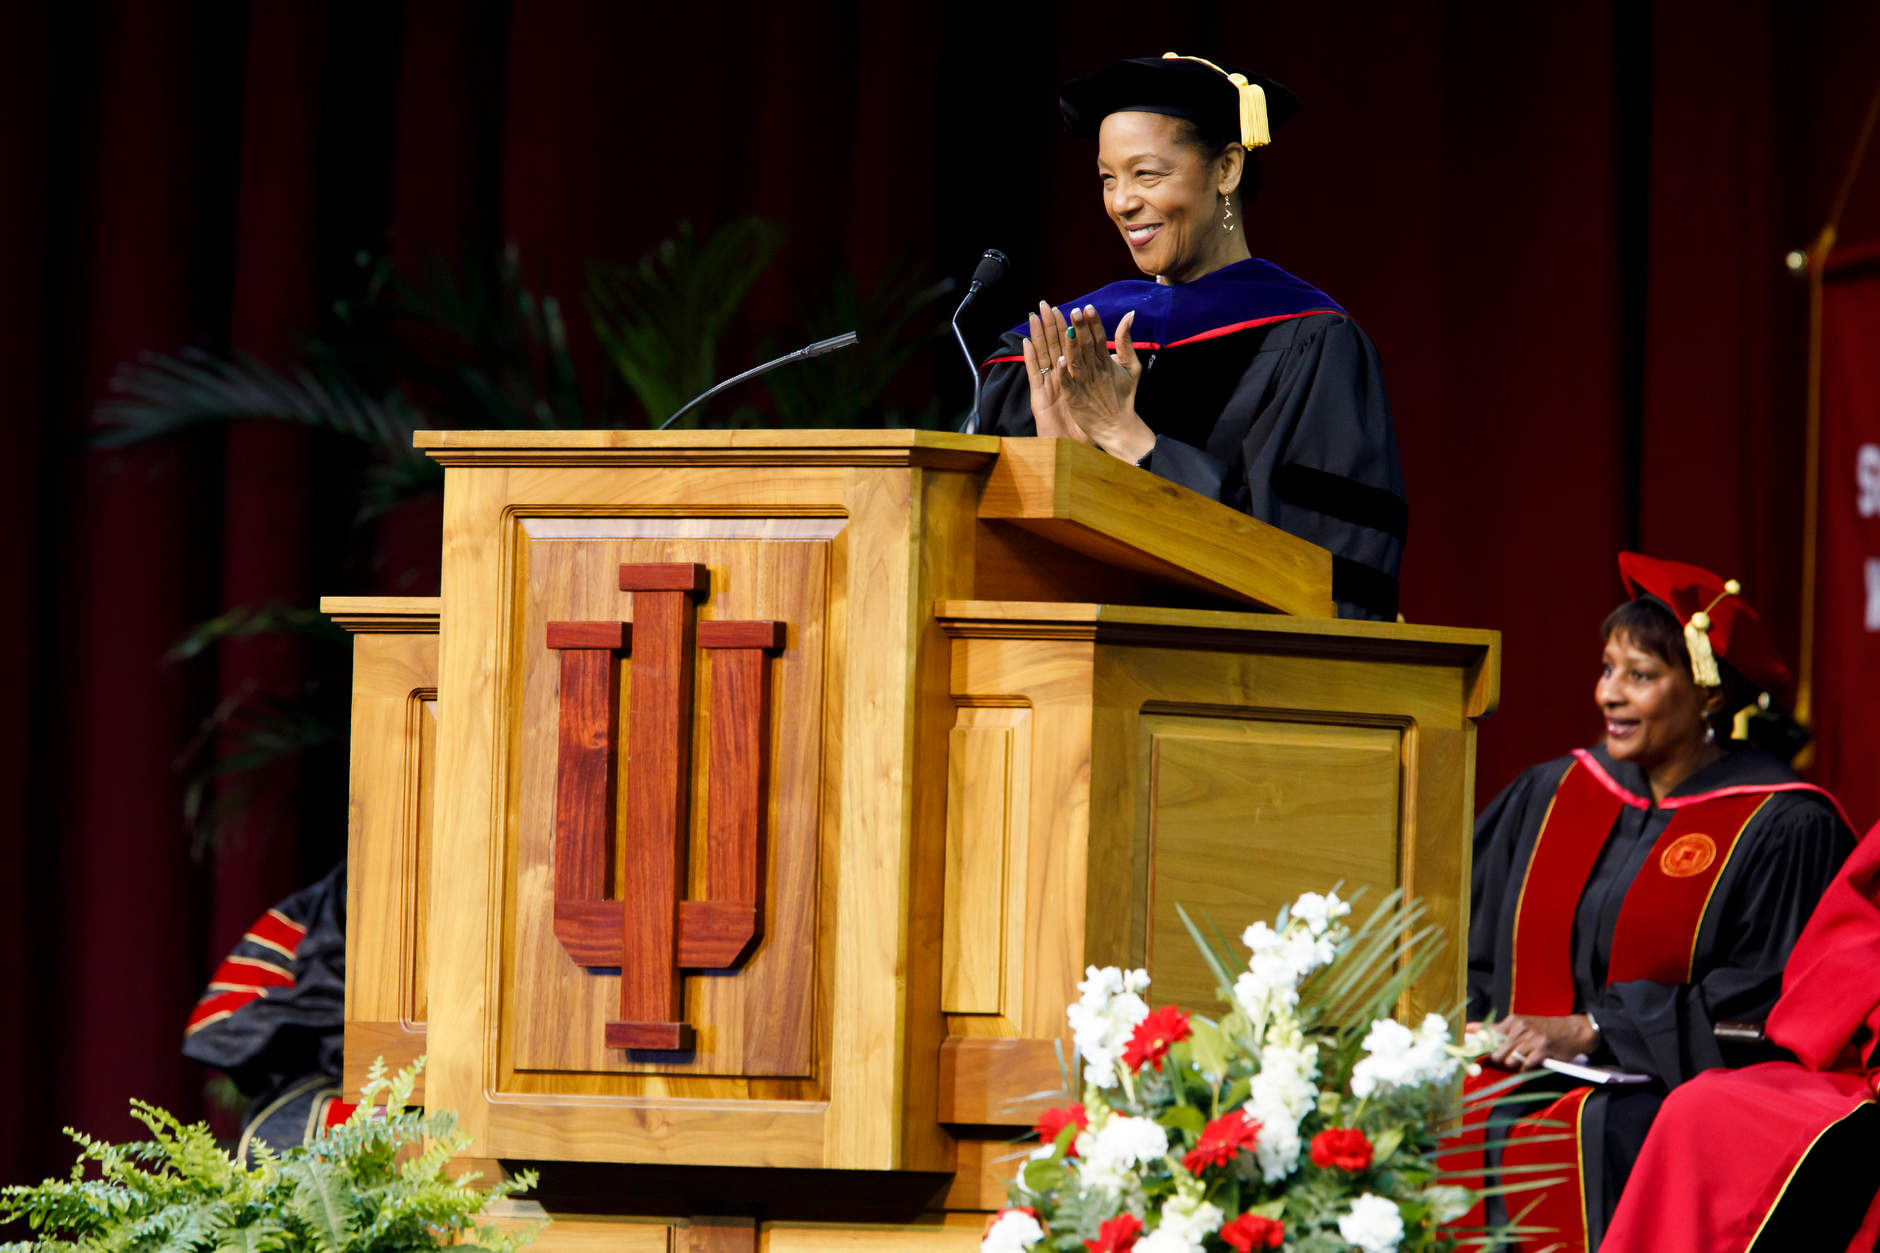 Indiana University South Bend Interim Chancellor Jann Joseph speaks during the IU South Bend Commencement at the University of Notre Dame on Tuesday, May 7, 2019. (James Brosher/Indiana University)